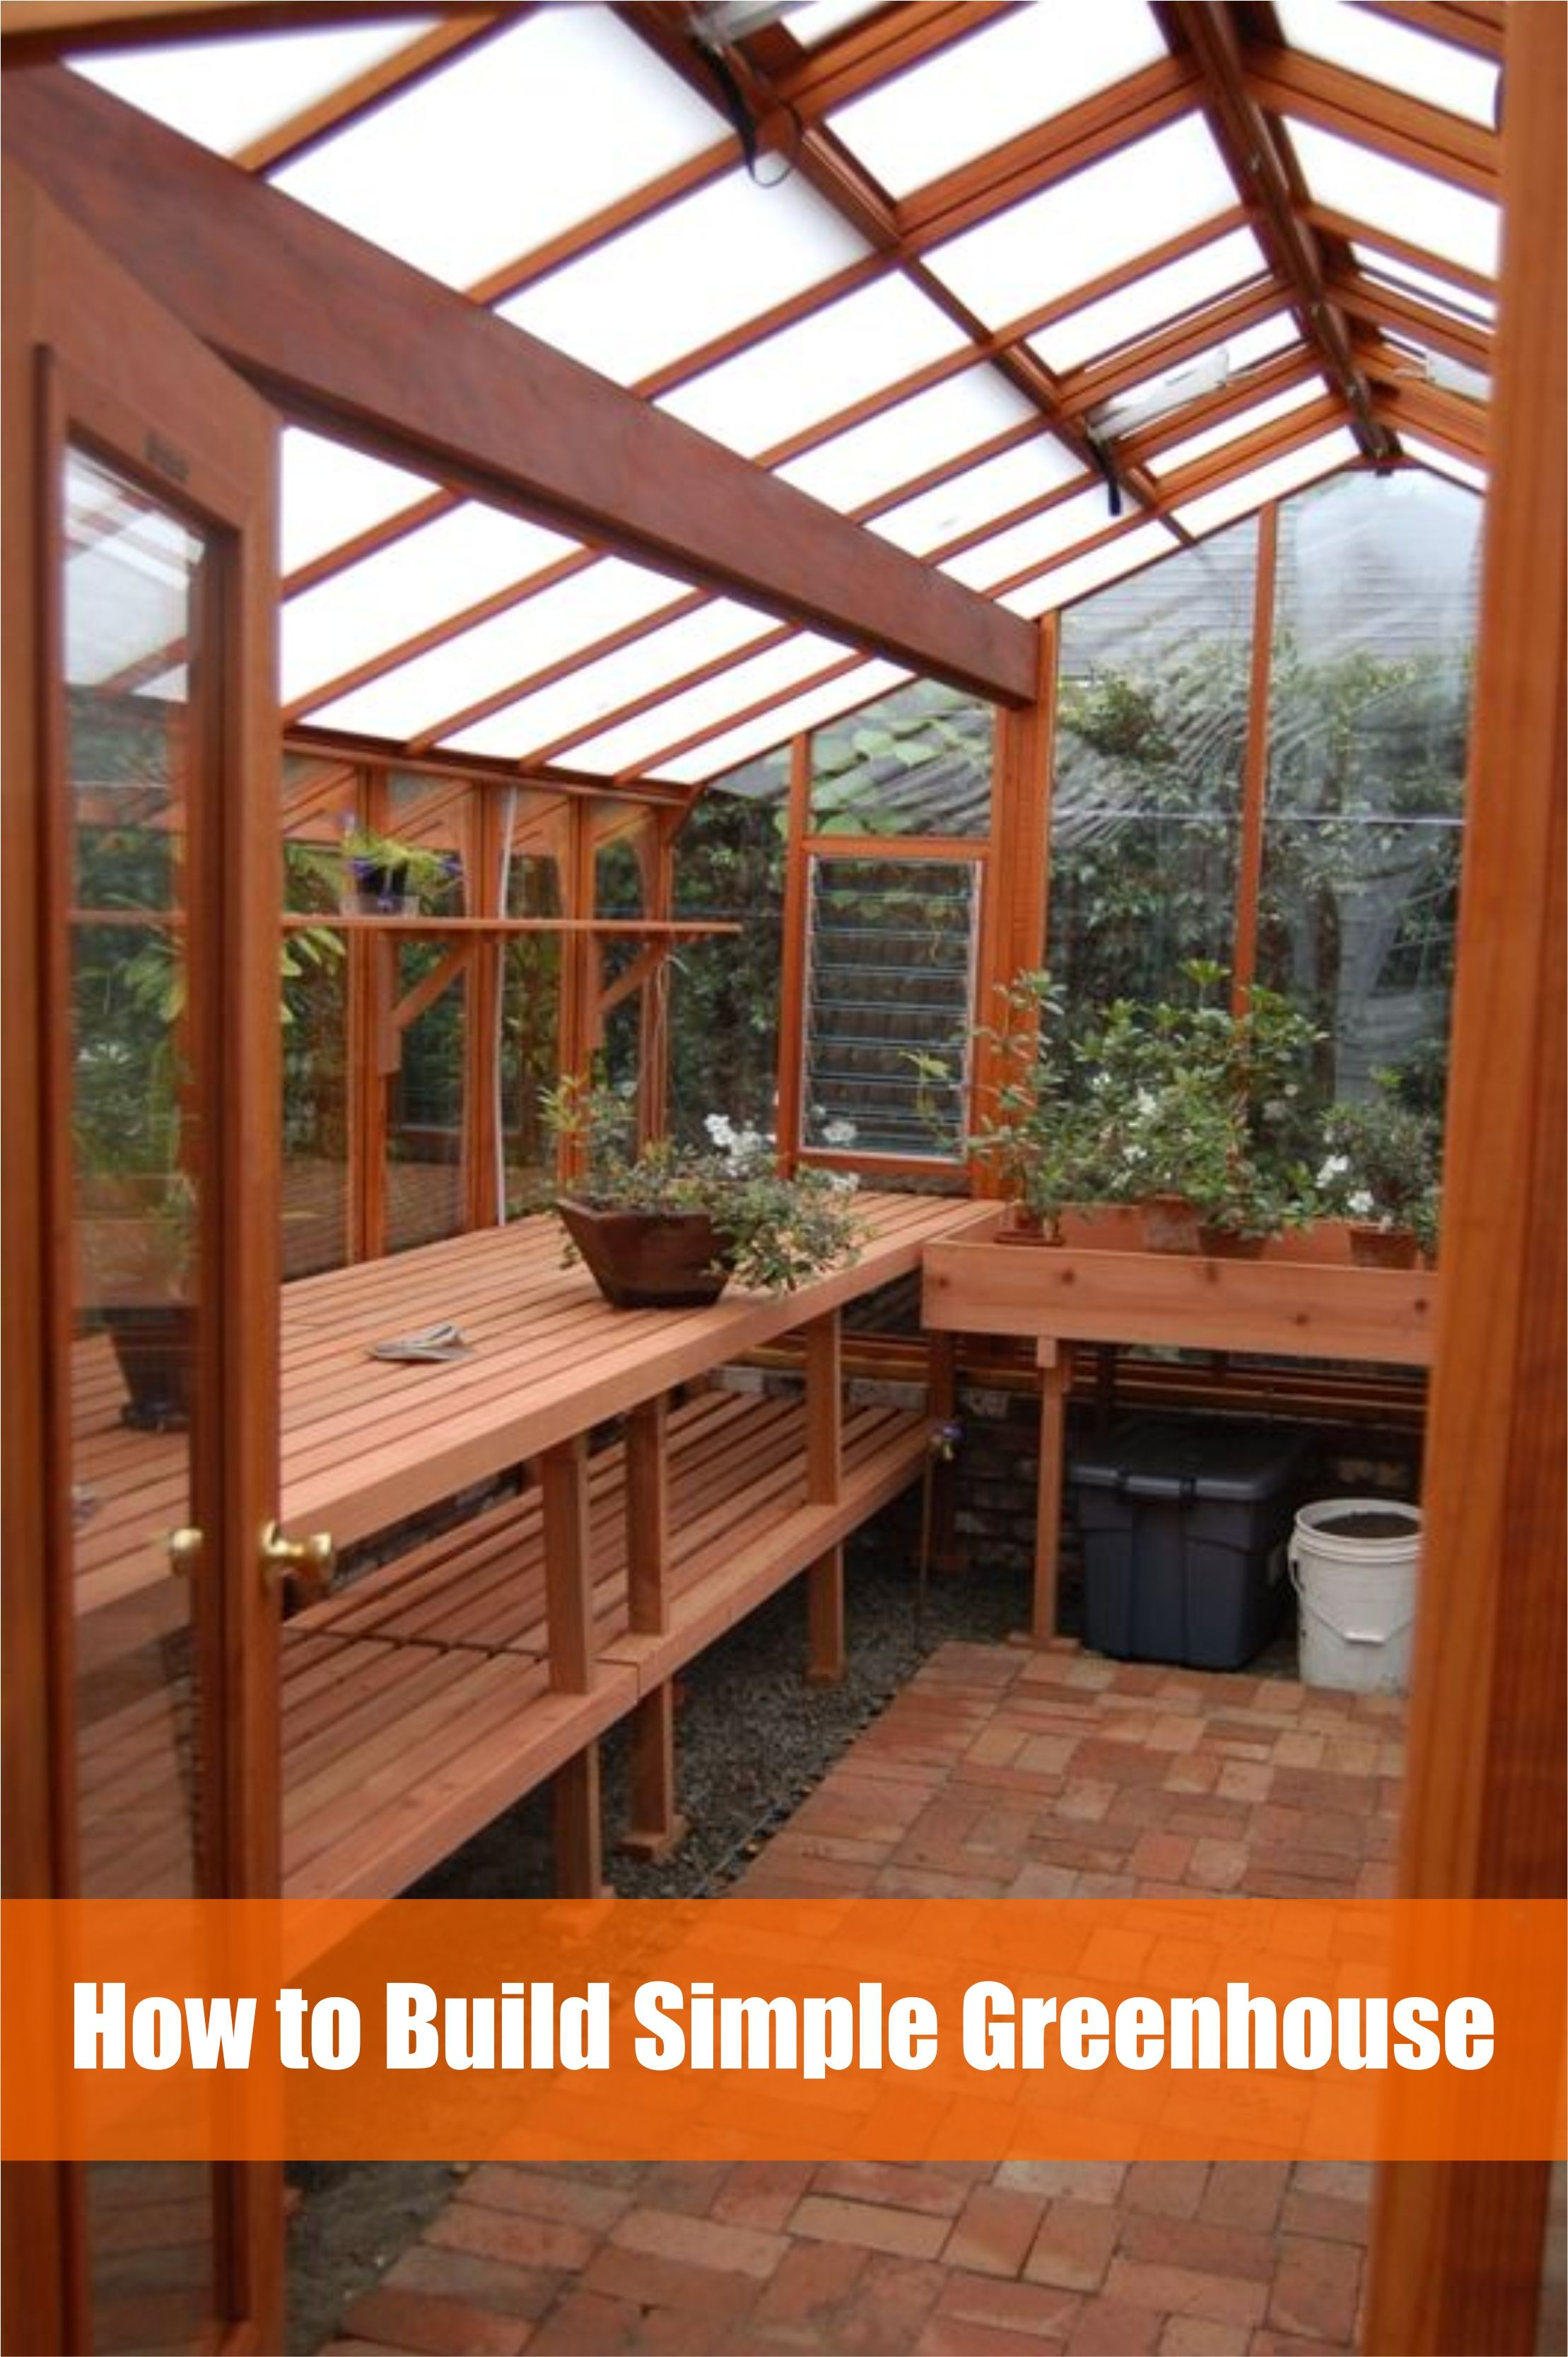 Personal Greenhouse Plans on easy greenhouse plans, permanent greenhouse plans, commercial greenhouse plans, unique greenhouse plans, movable greenhouse plans, portable greenhouse plans, temporary greenhouse plans, diy greenhouse plans, hobby greenhouse plans, printable greenhouse plans,